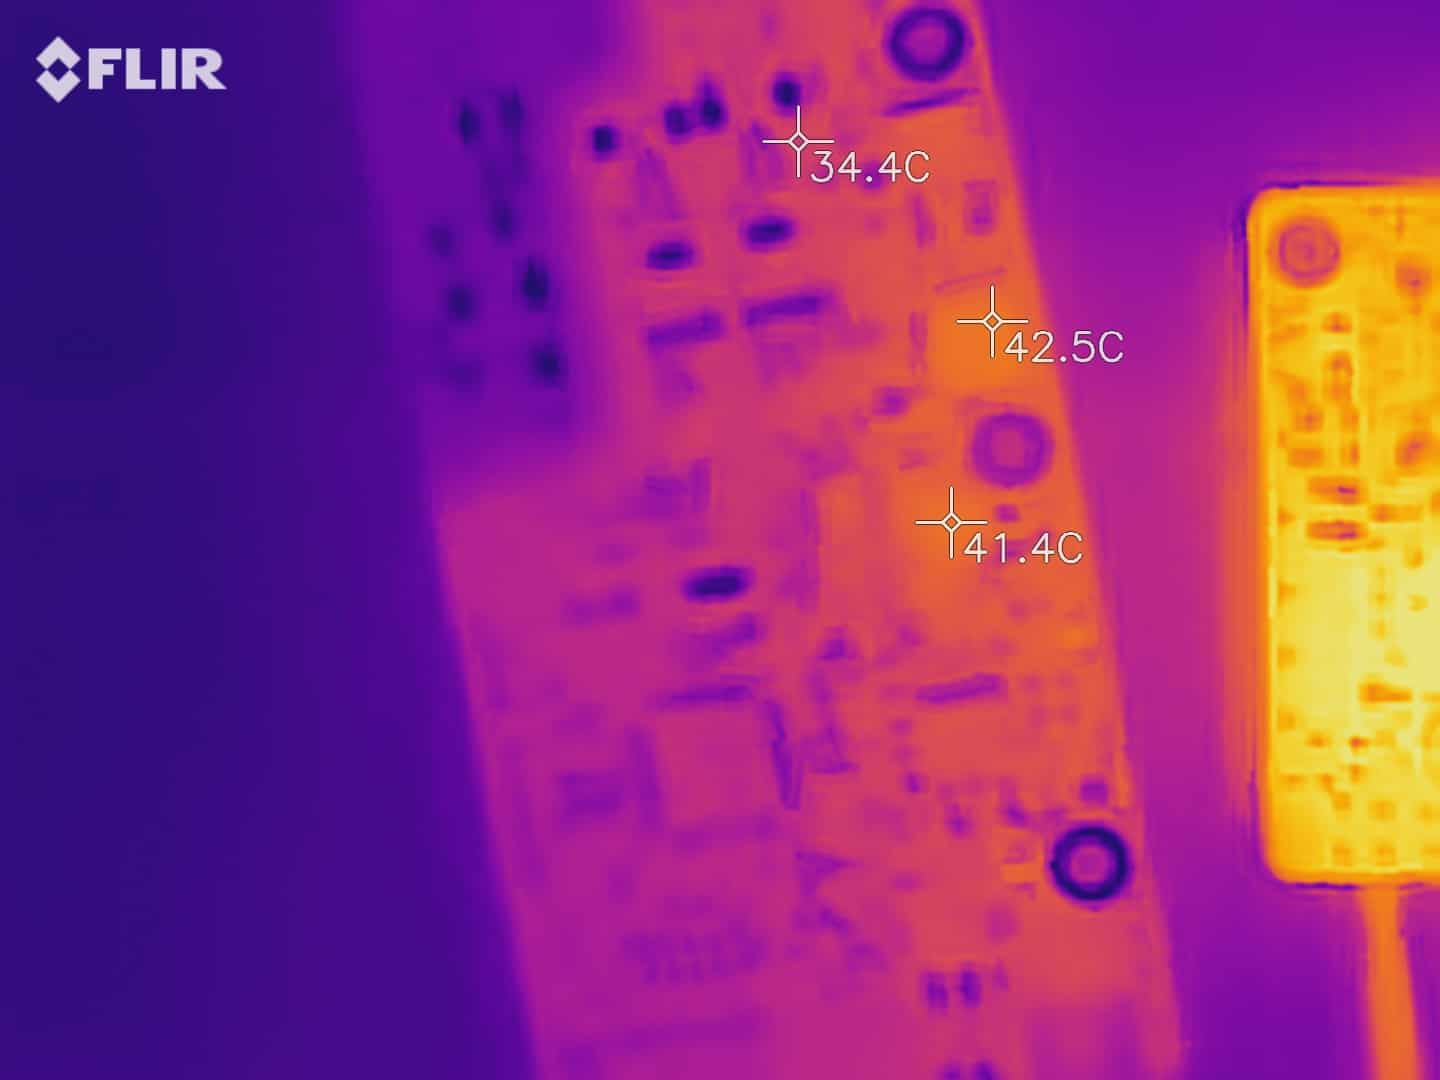 PCB infrared thermal image